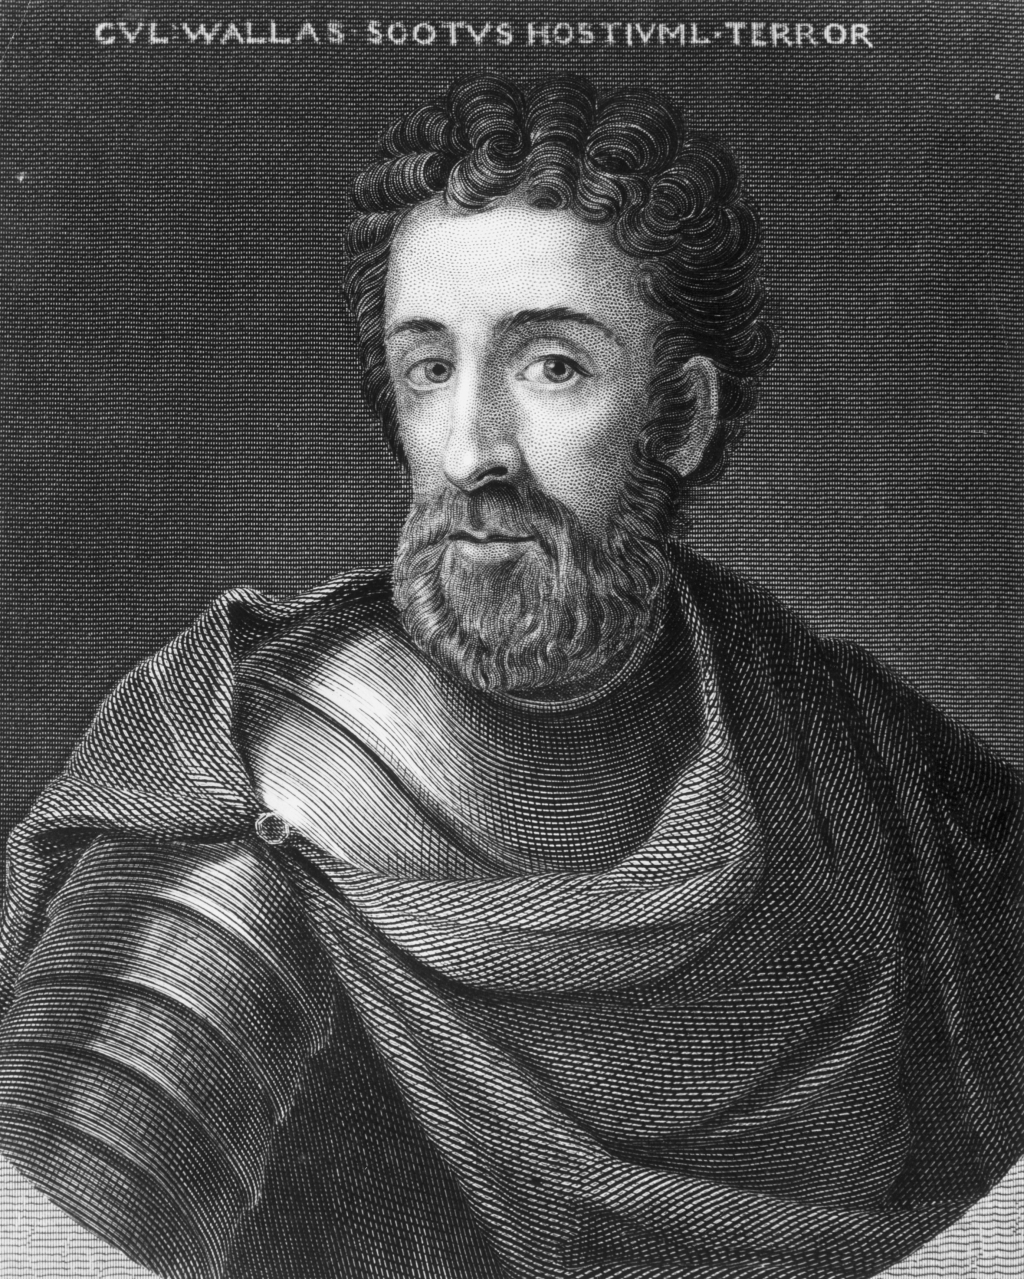 real-life William Wallace